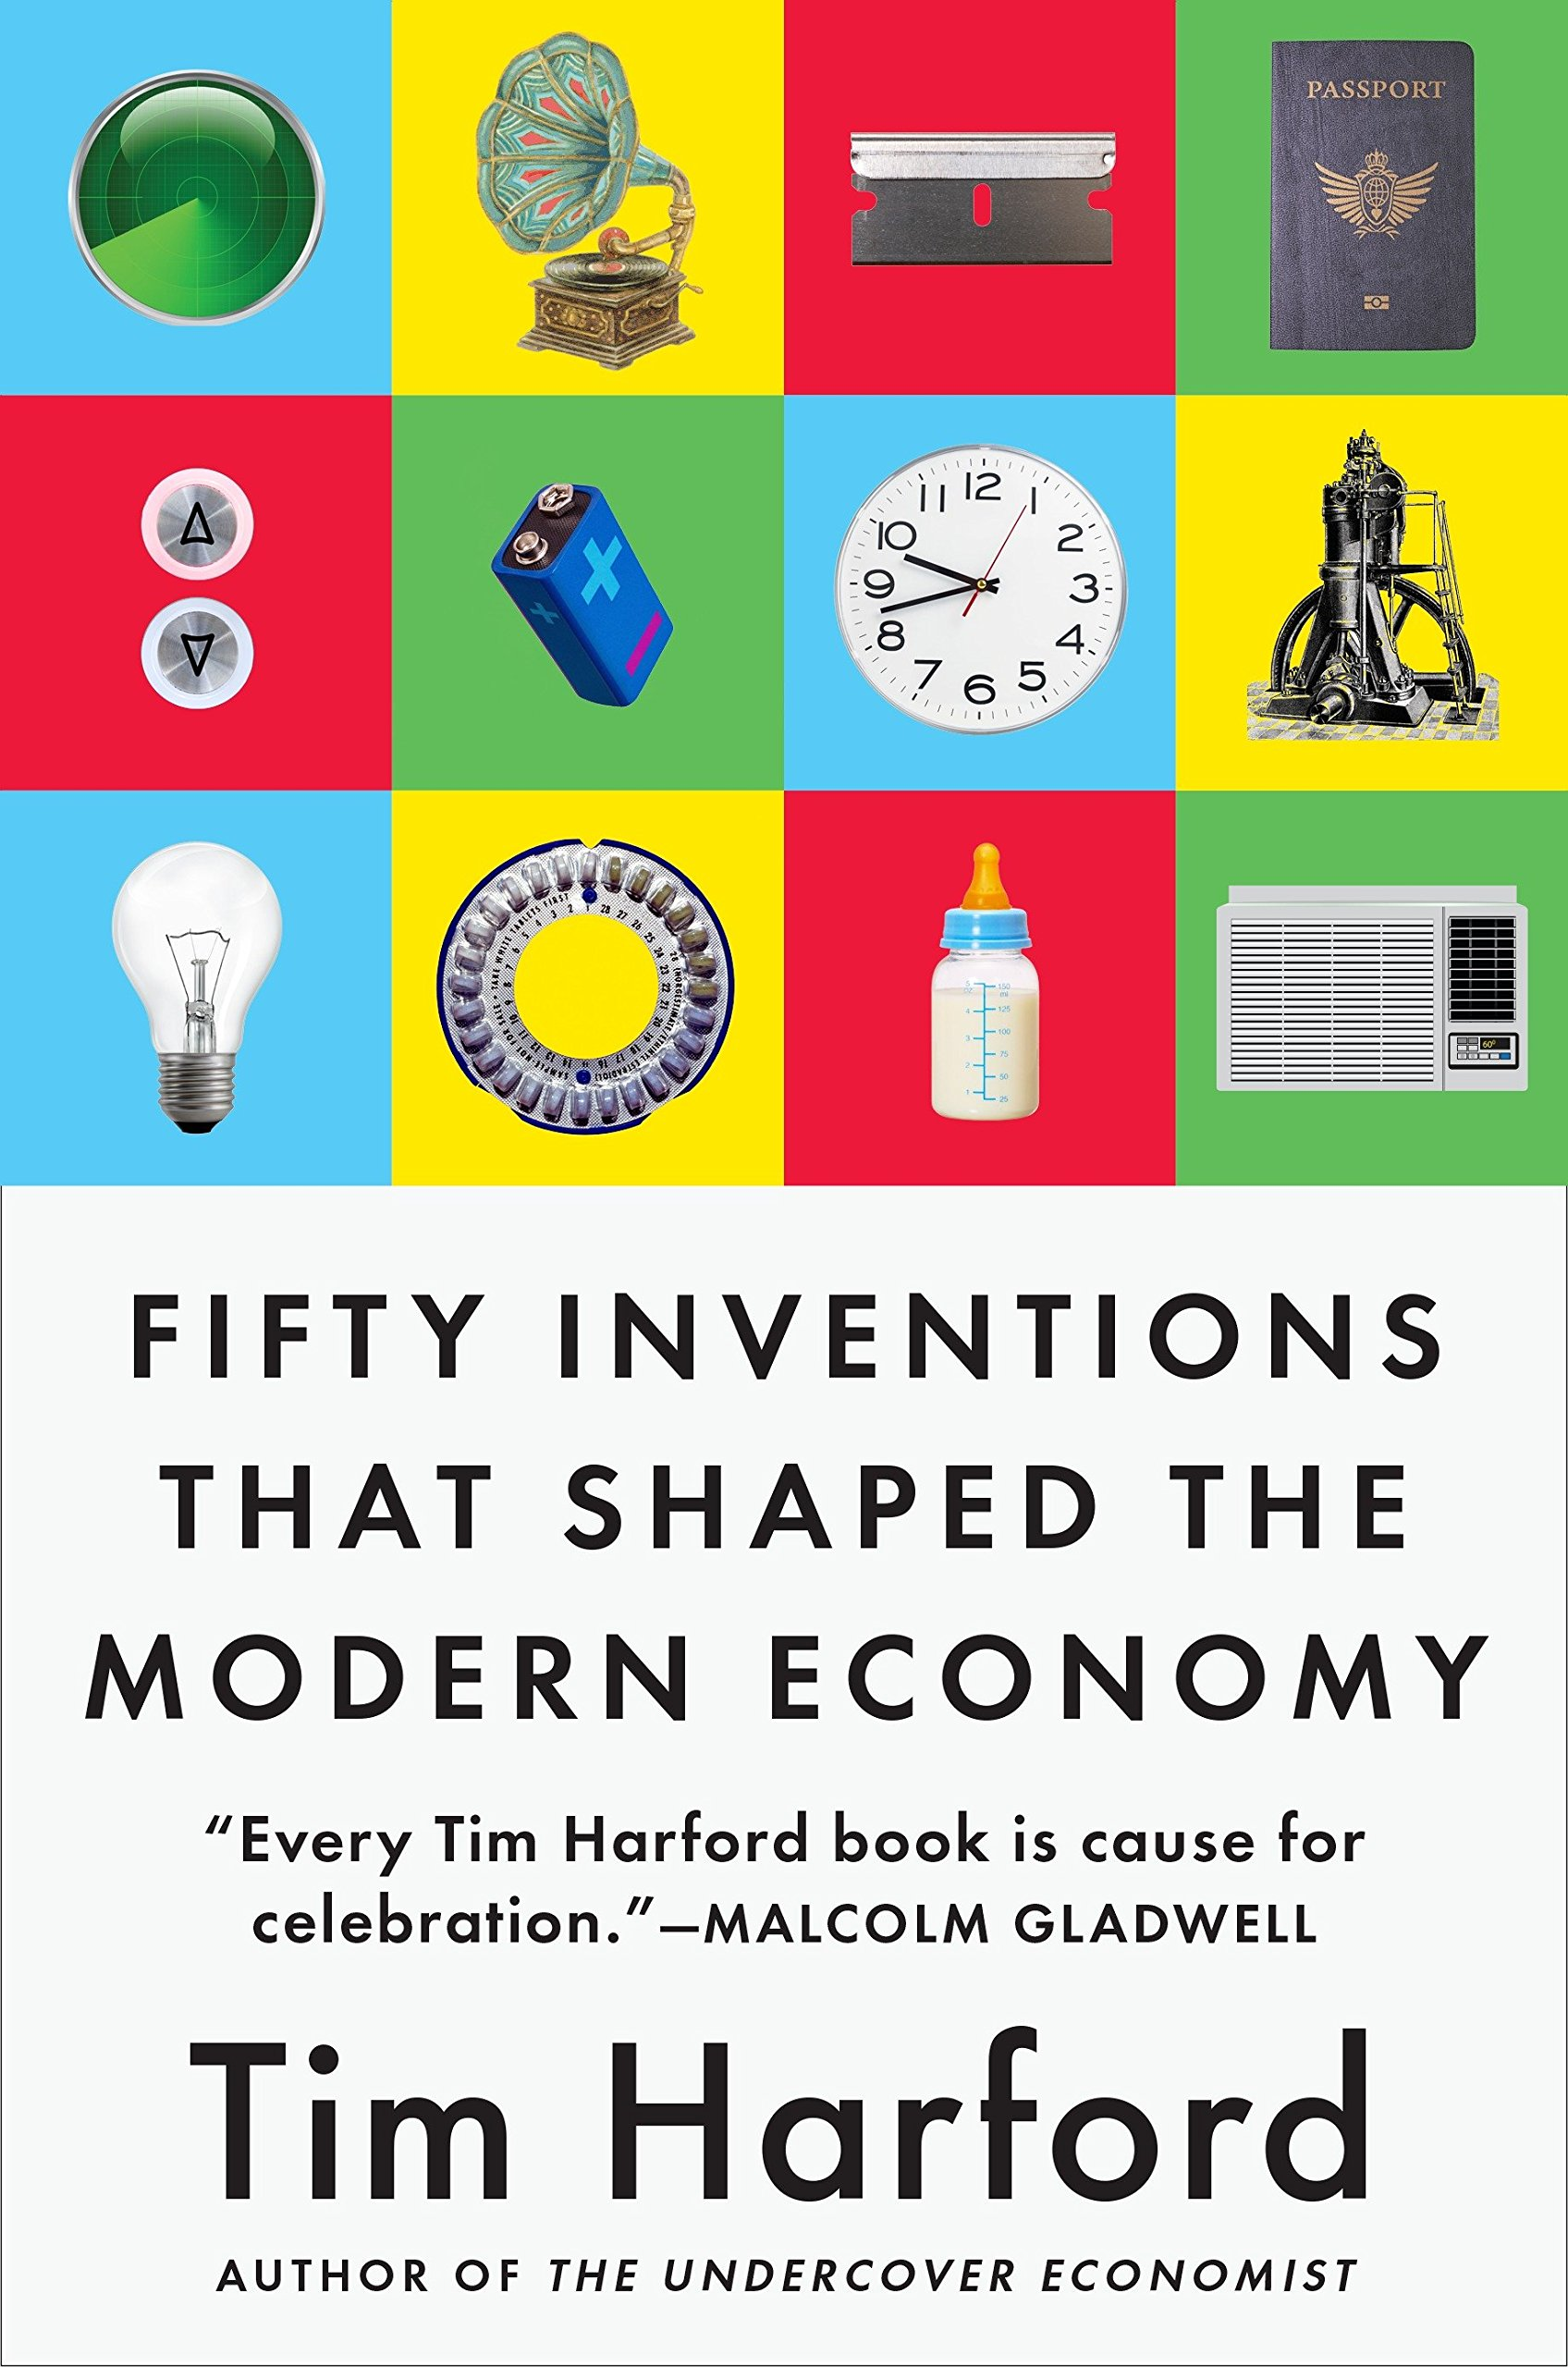 Image OfFifty Inventions That Shaped The Modern Economy